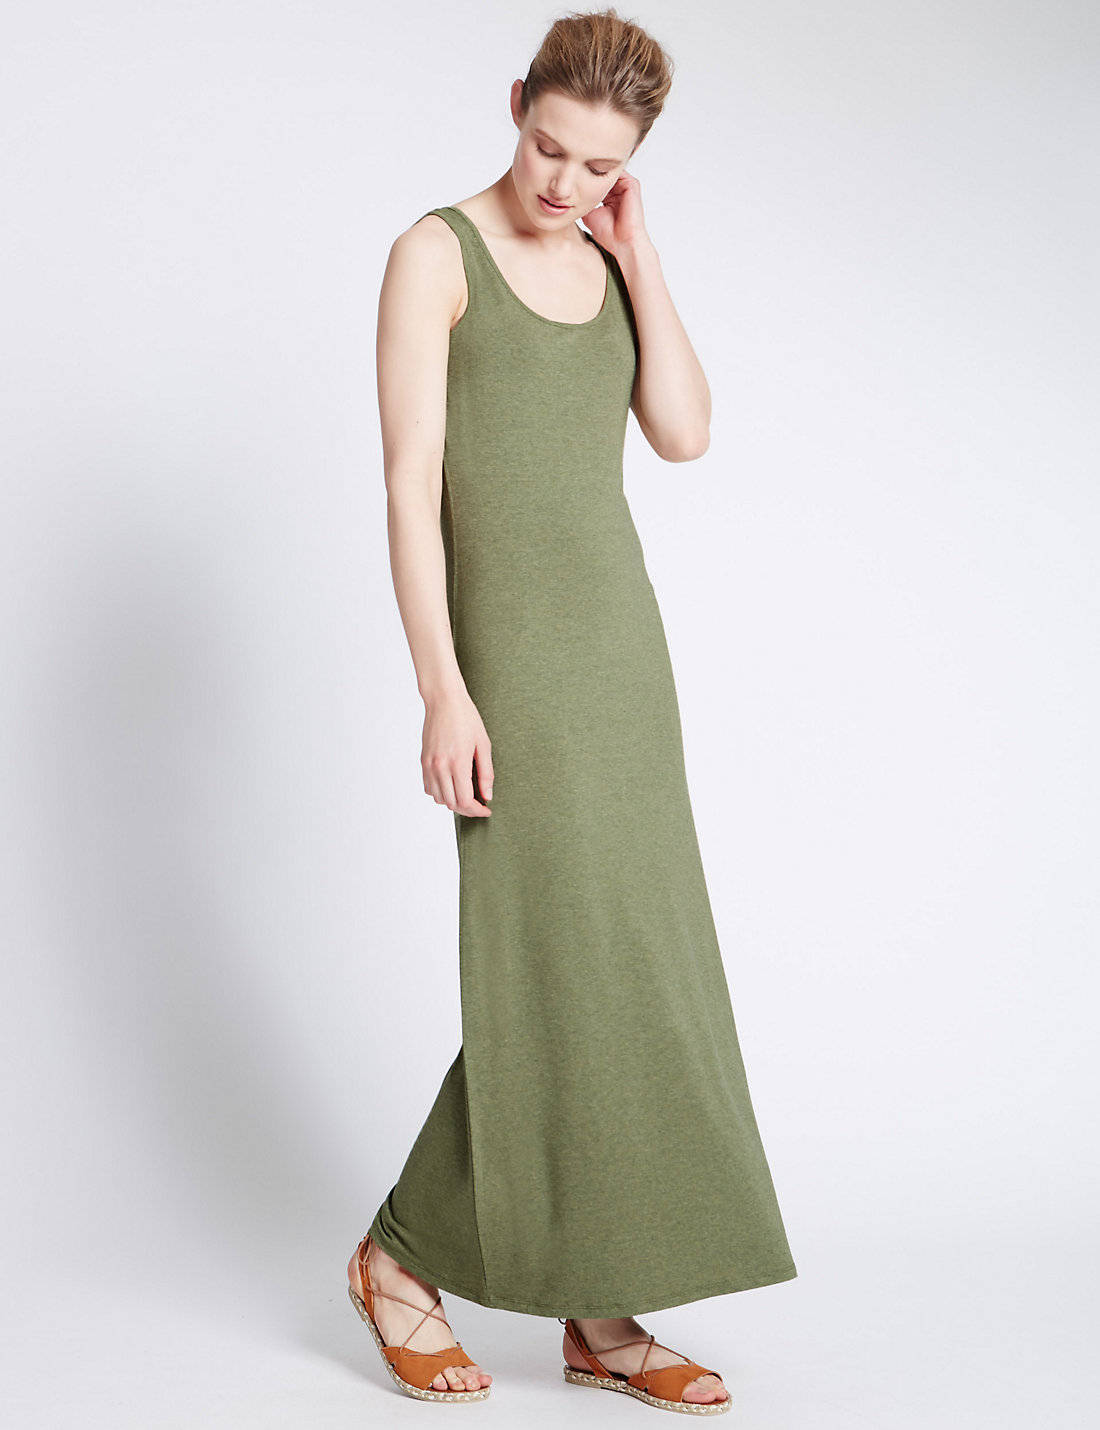 Littlewoods bridesmaid dresses uk images braidsmaid dress littlewoods bridesmaid dresses uk images braidsmaid dress littlewoods bridesmaid dresses uk images braidsmaid dress littlewoods bridesmaid ombrellifo Image collections